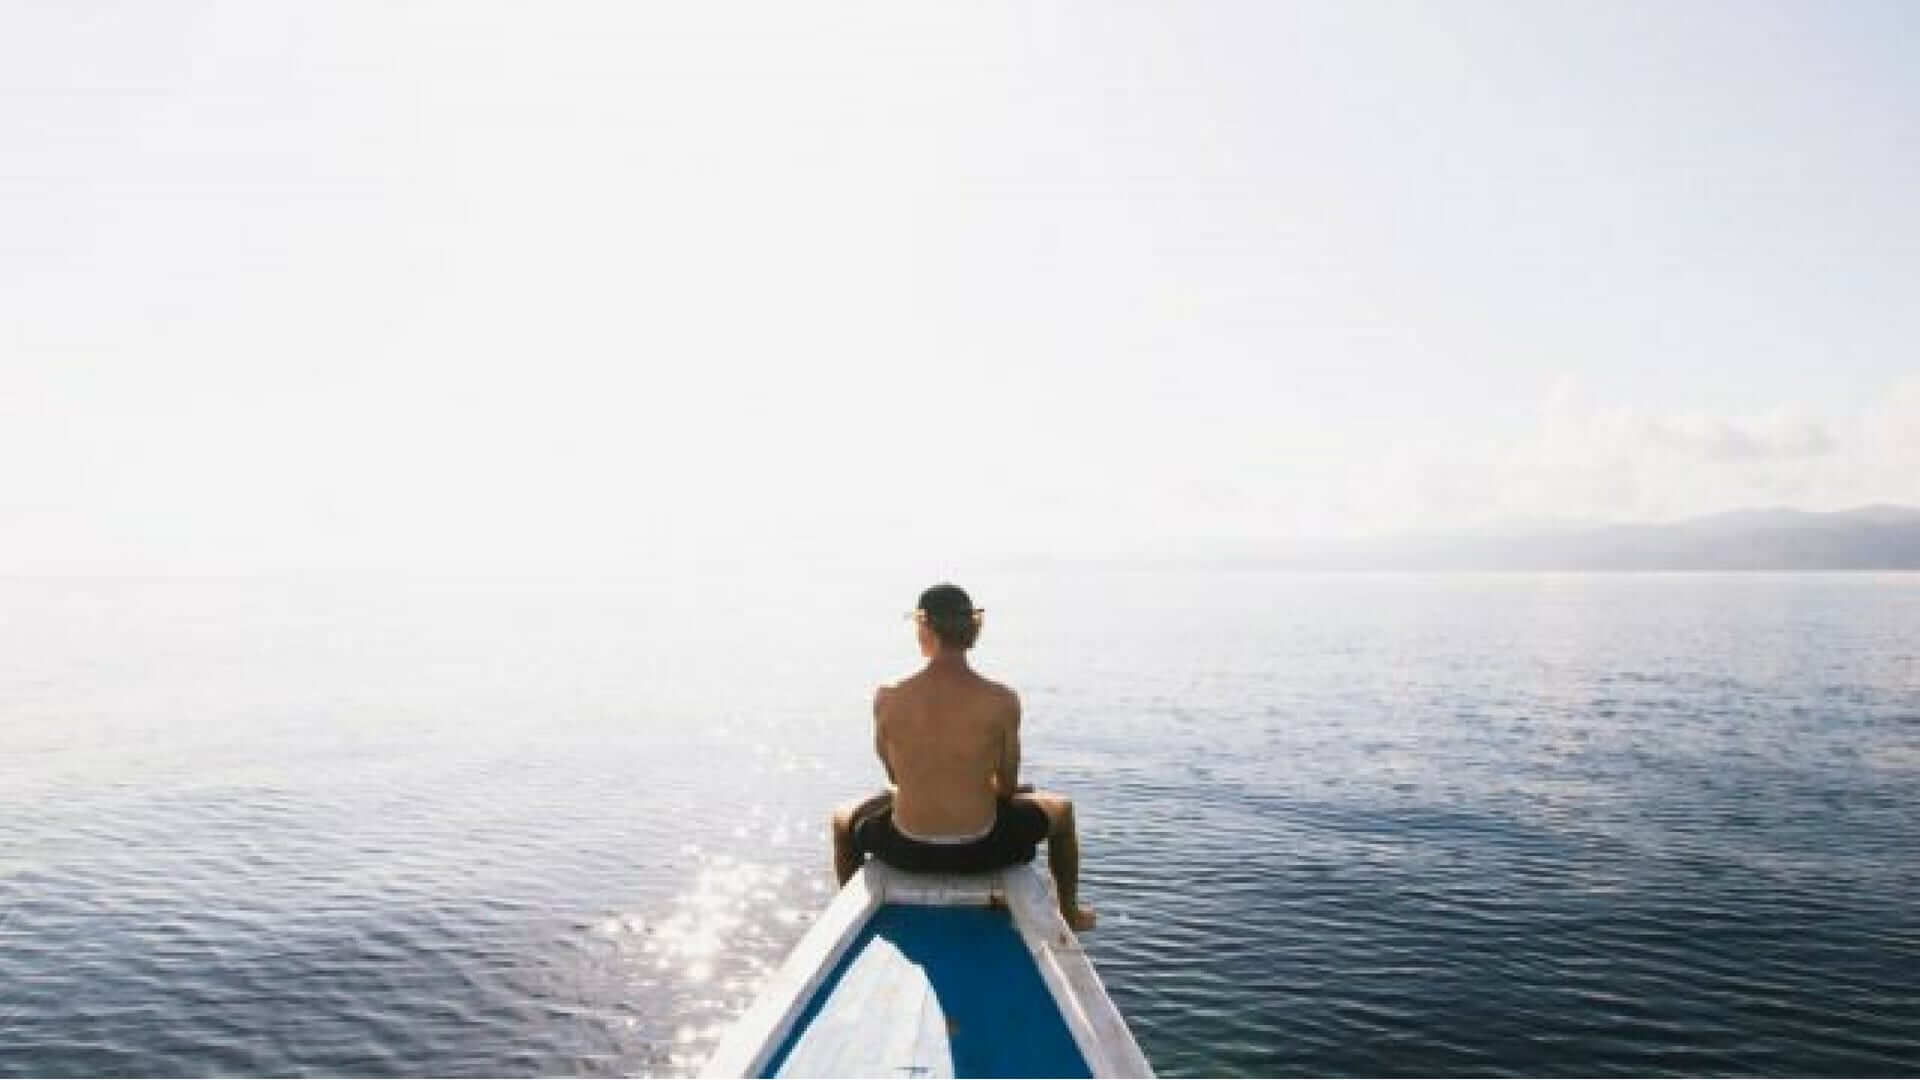 A man sitting at the end of a boat watching over the sea in Bali.